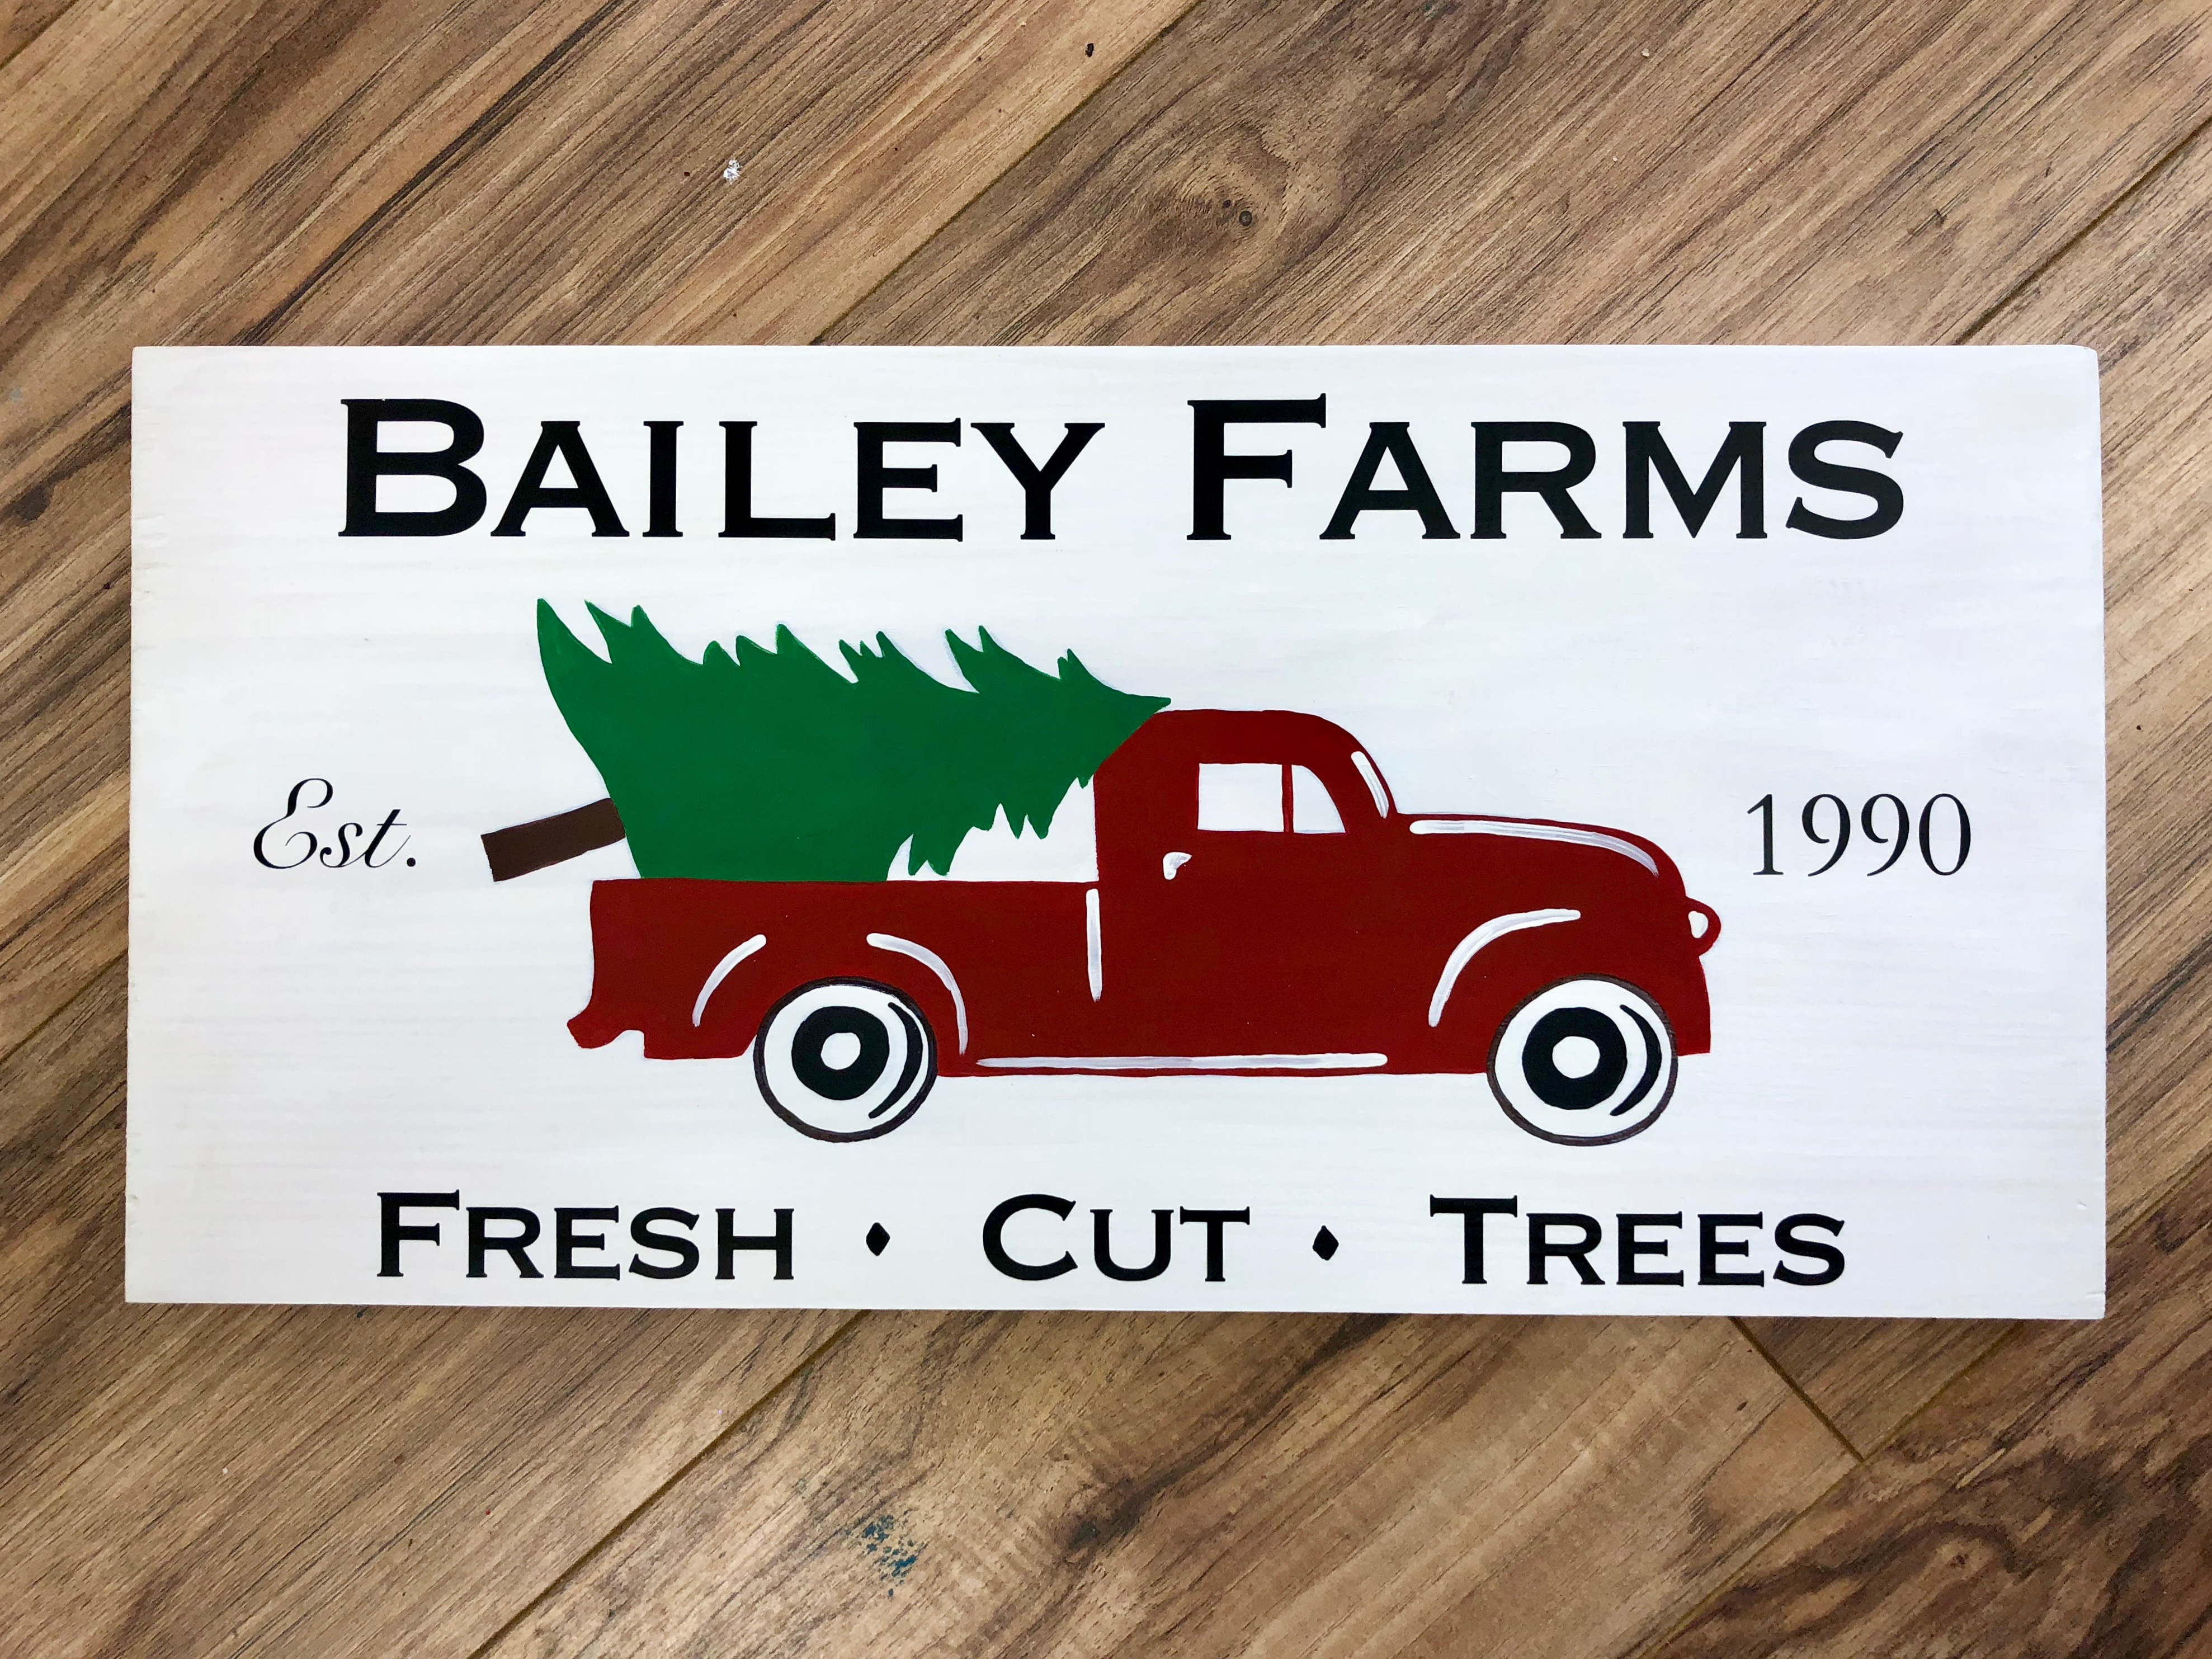 Christmas Farms - Personalized!